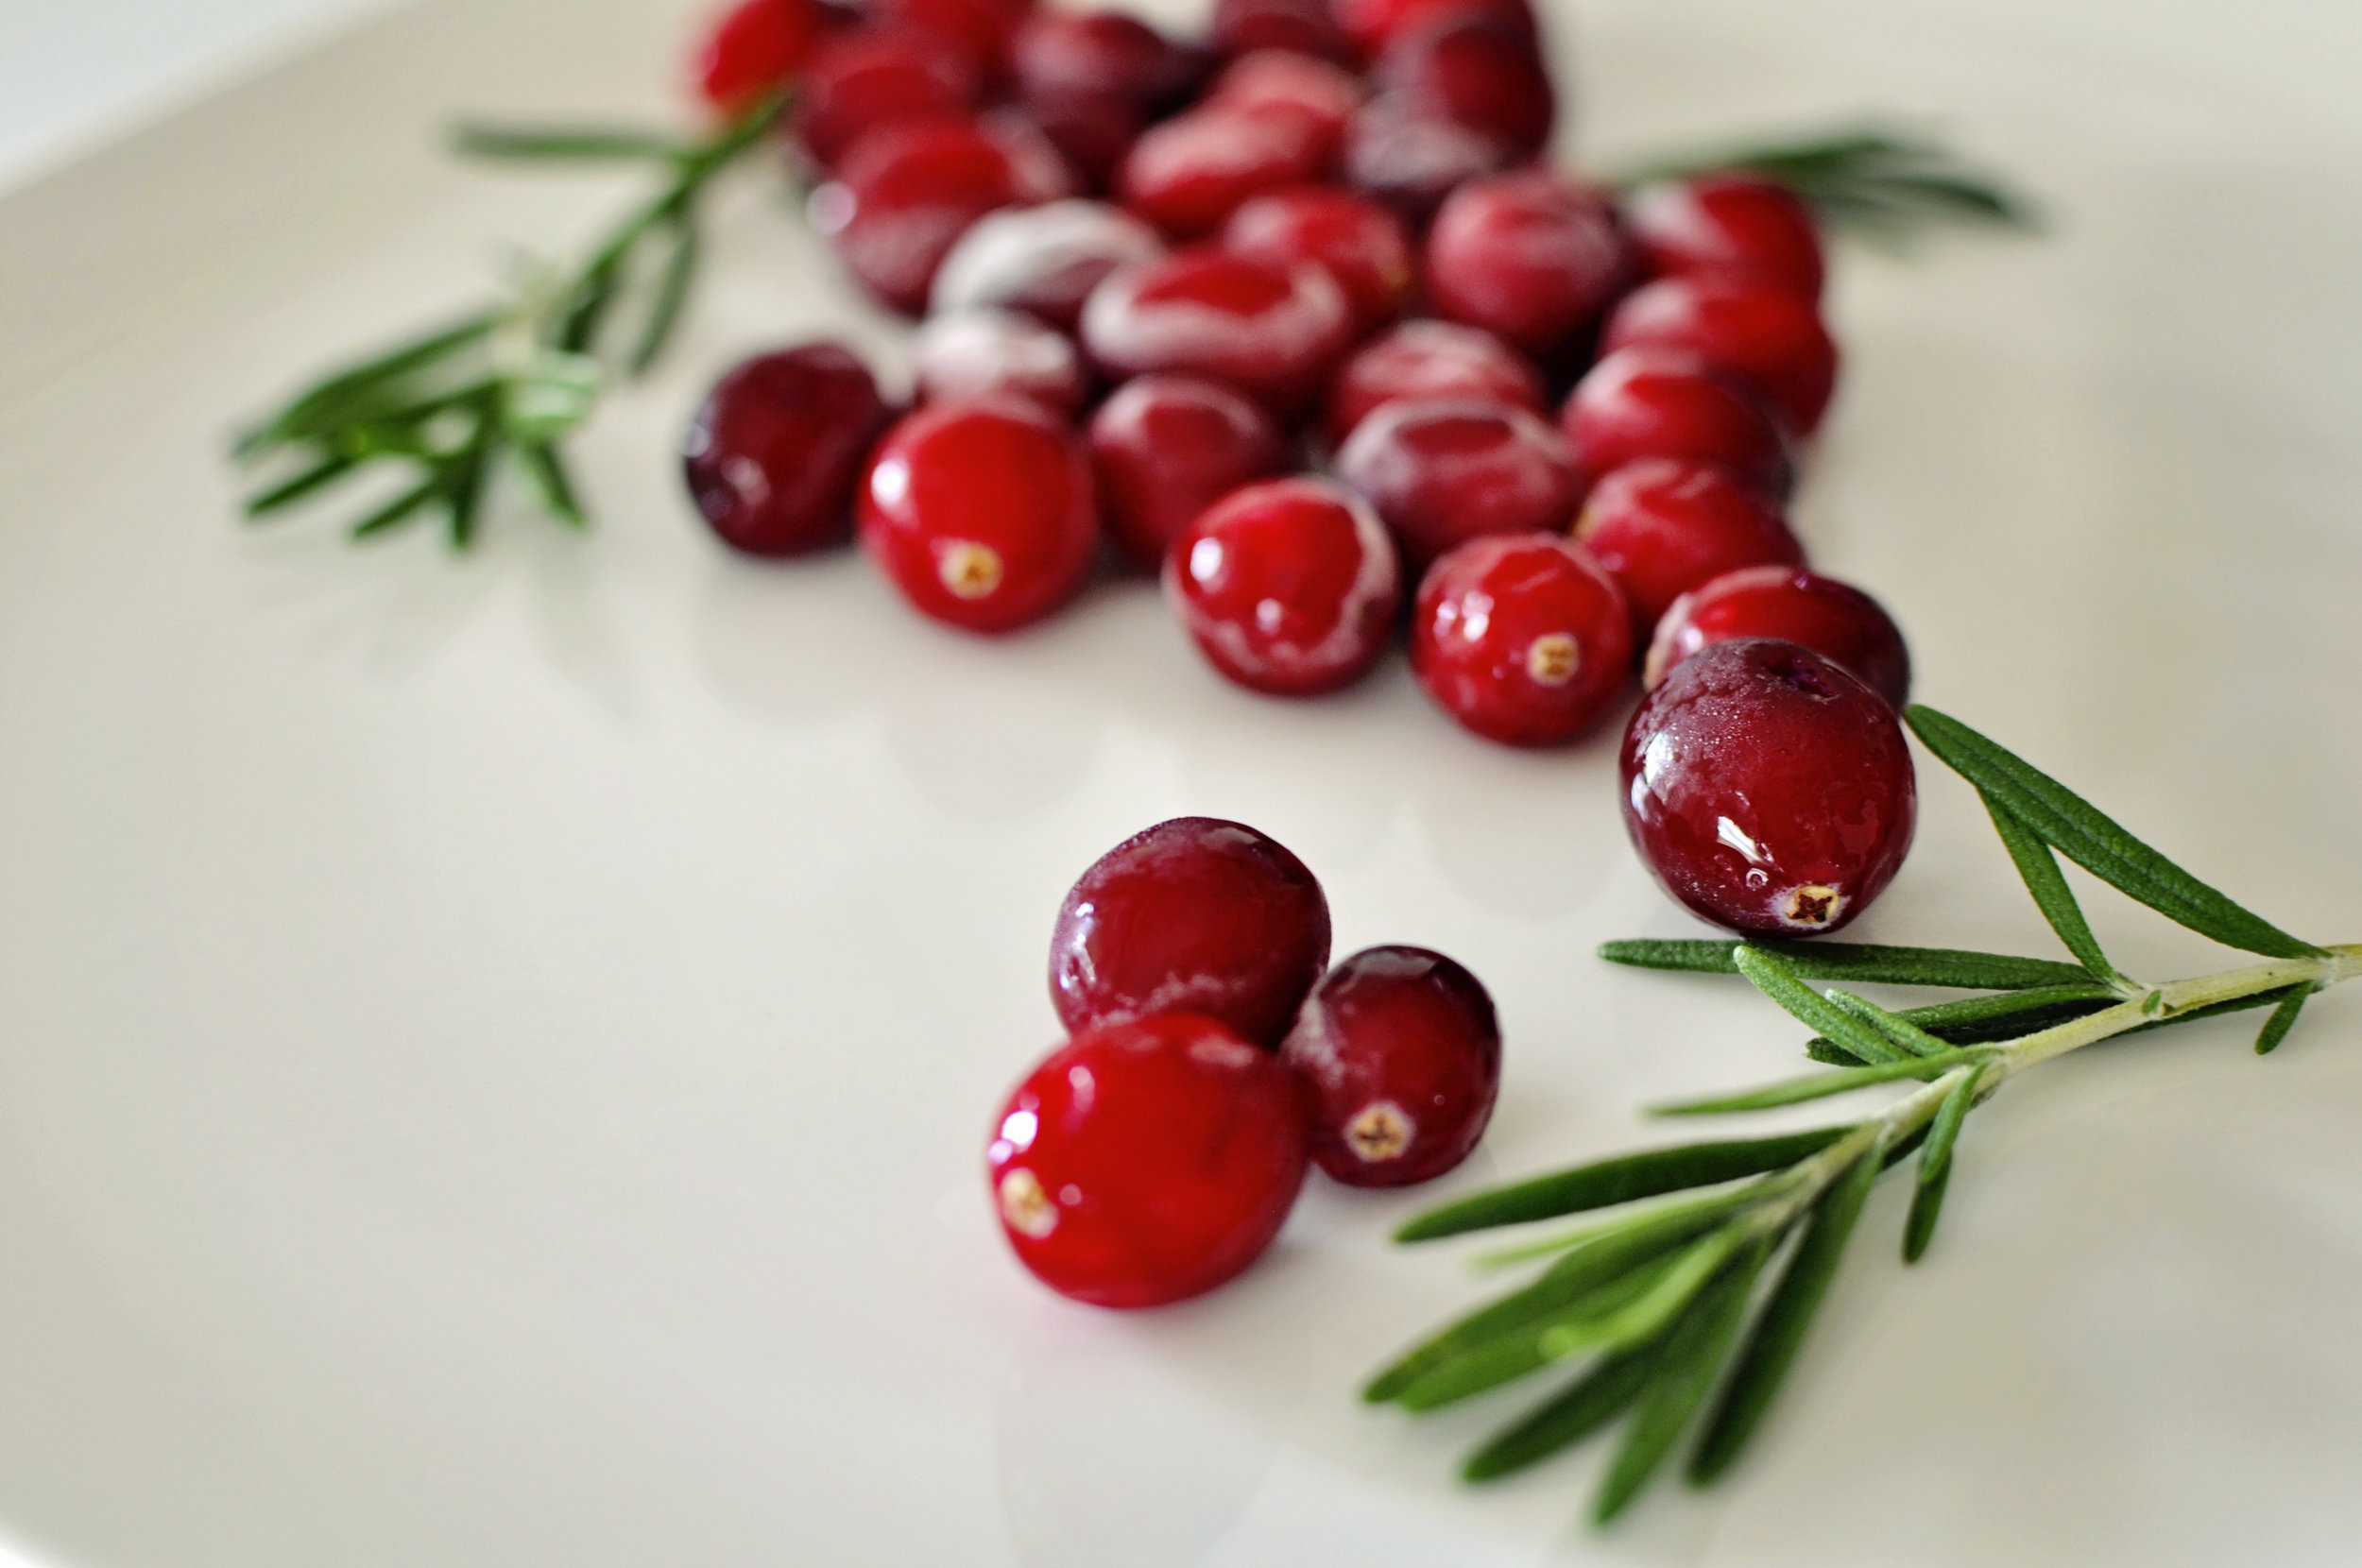 3FestiveHolidayCranberries4 copy.jpg